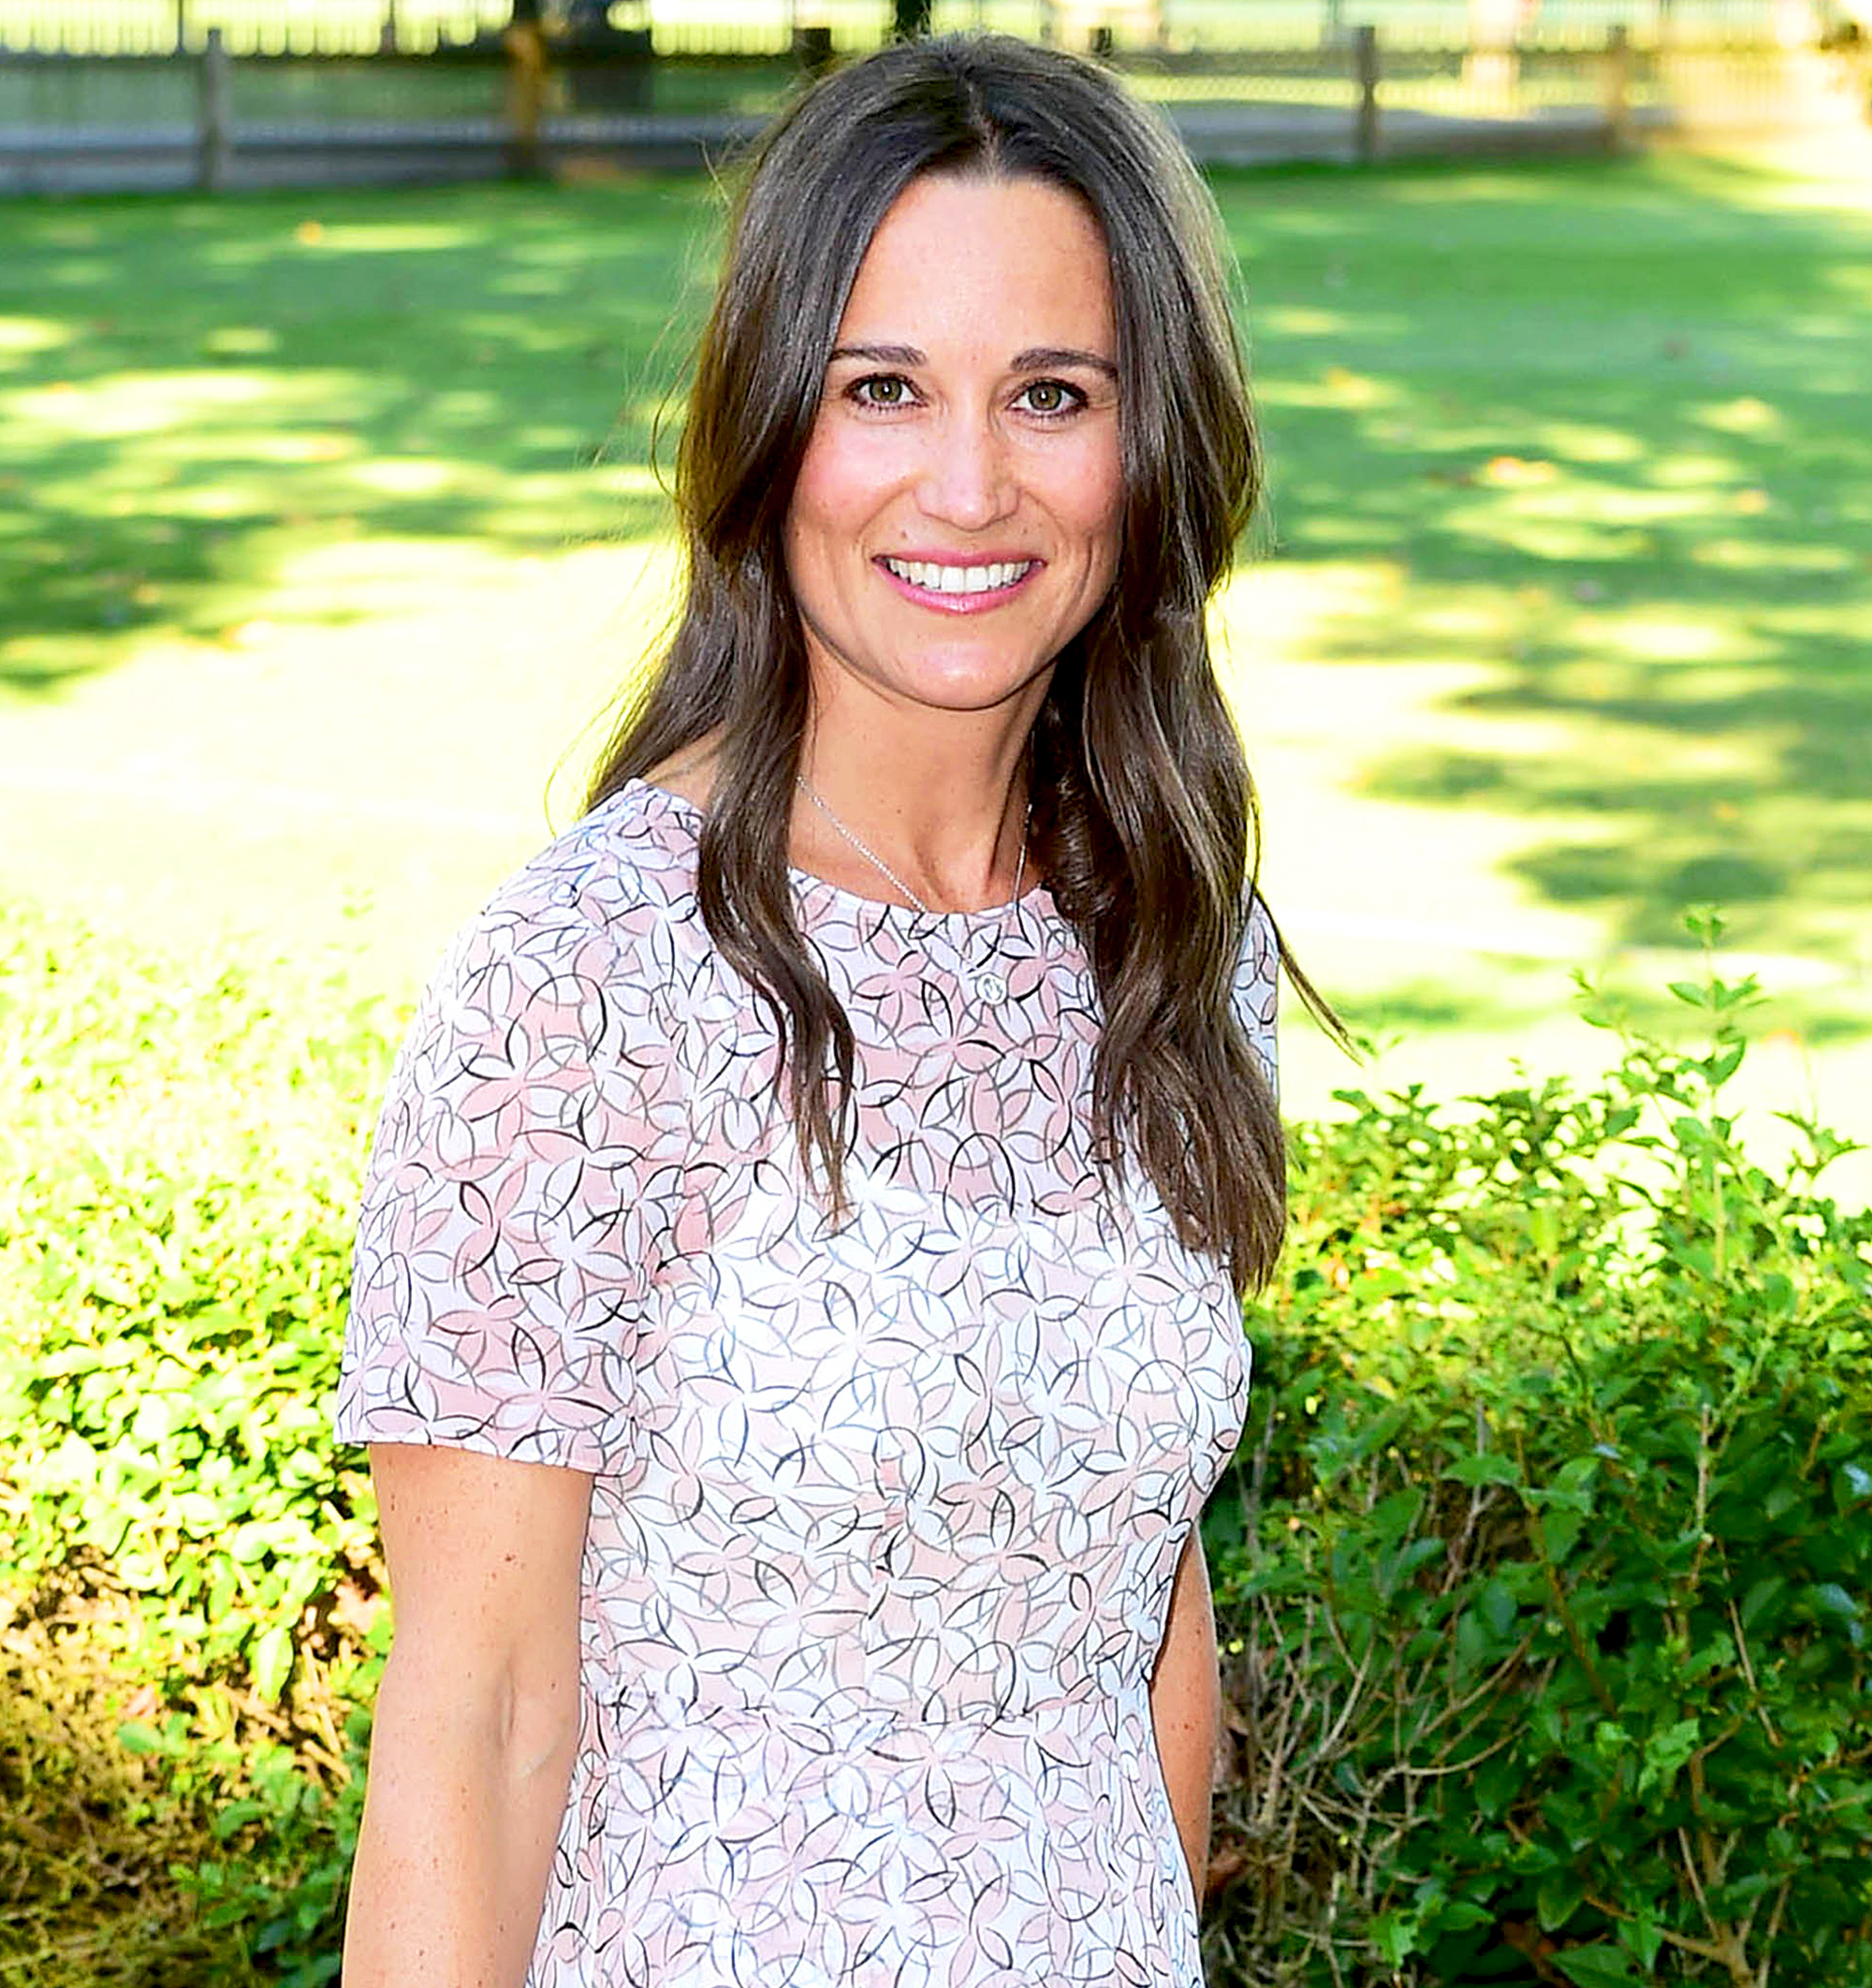 Pippa Middleton says she hasn't had morning sickness like sister Kate Middleton